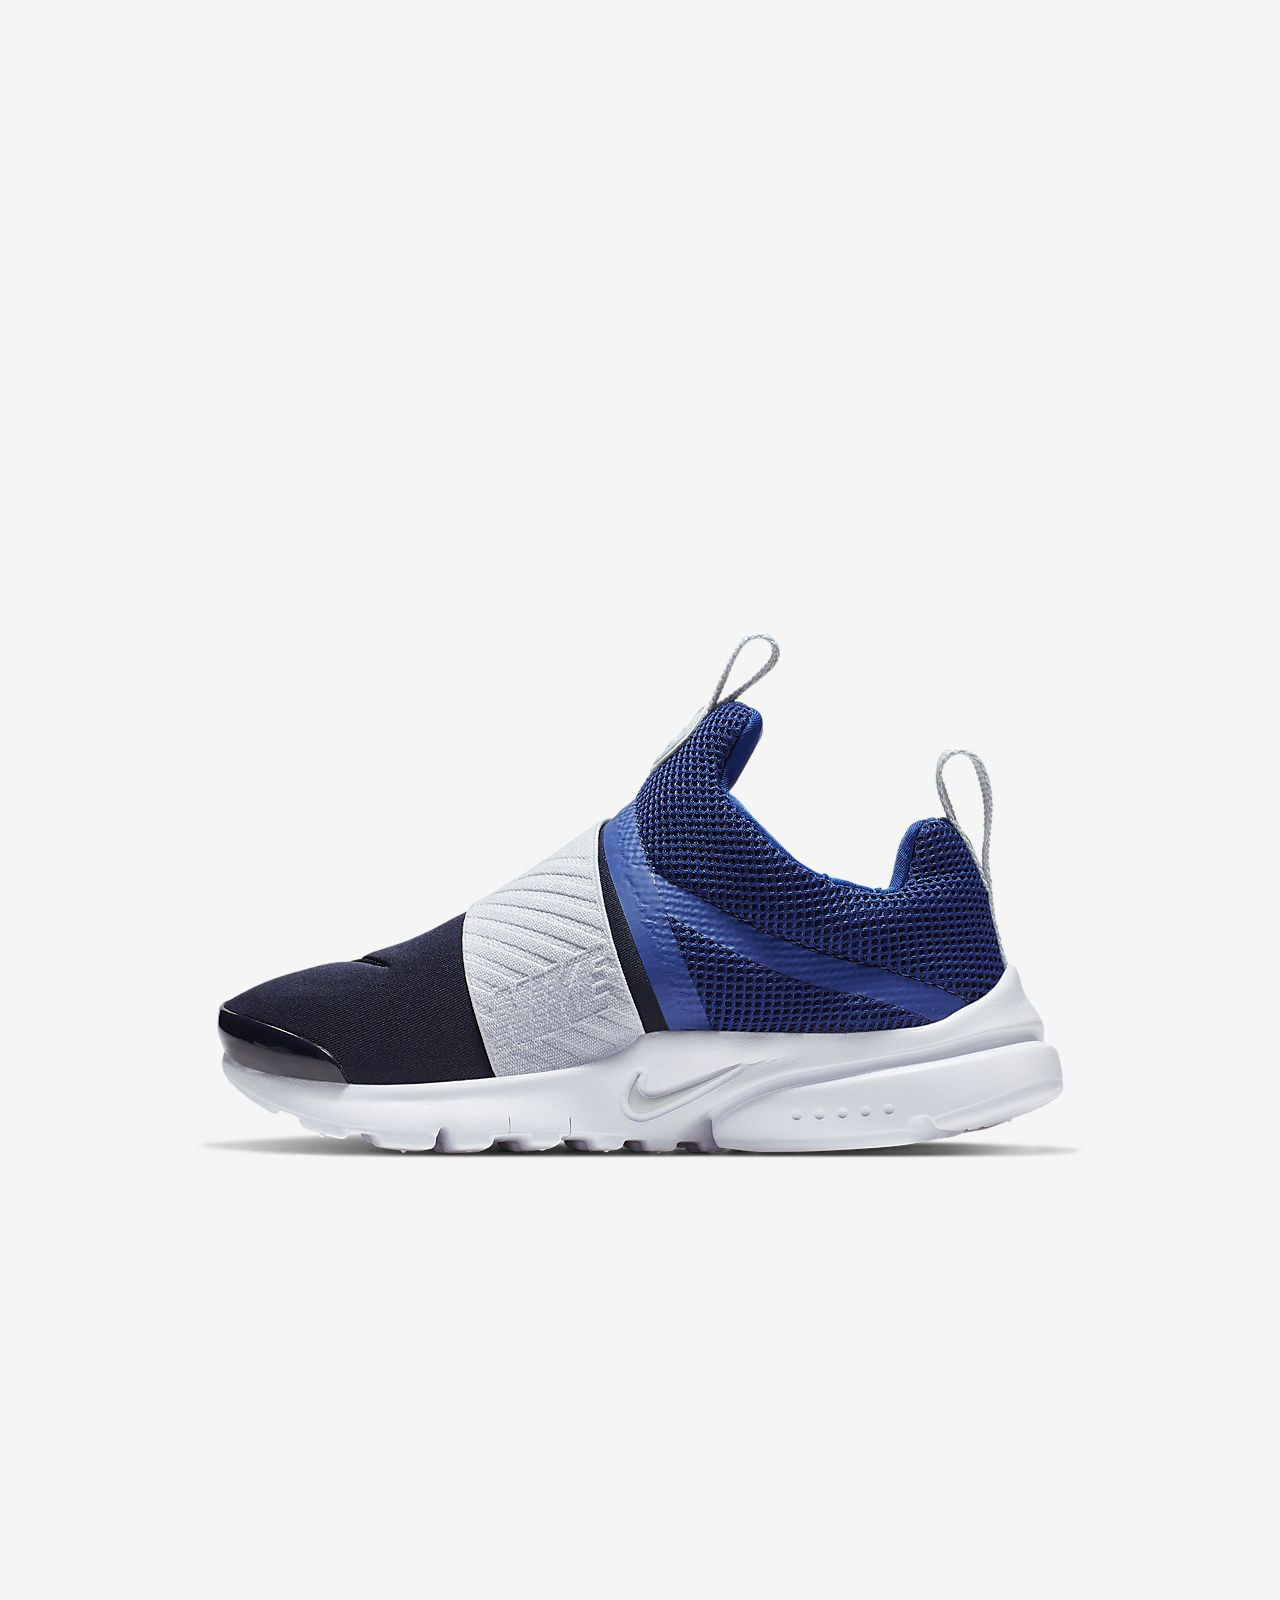 check out 37ccc b7ae9 ... Nike Presto Extreme Little Kids  Shoe